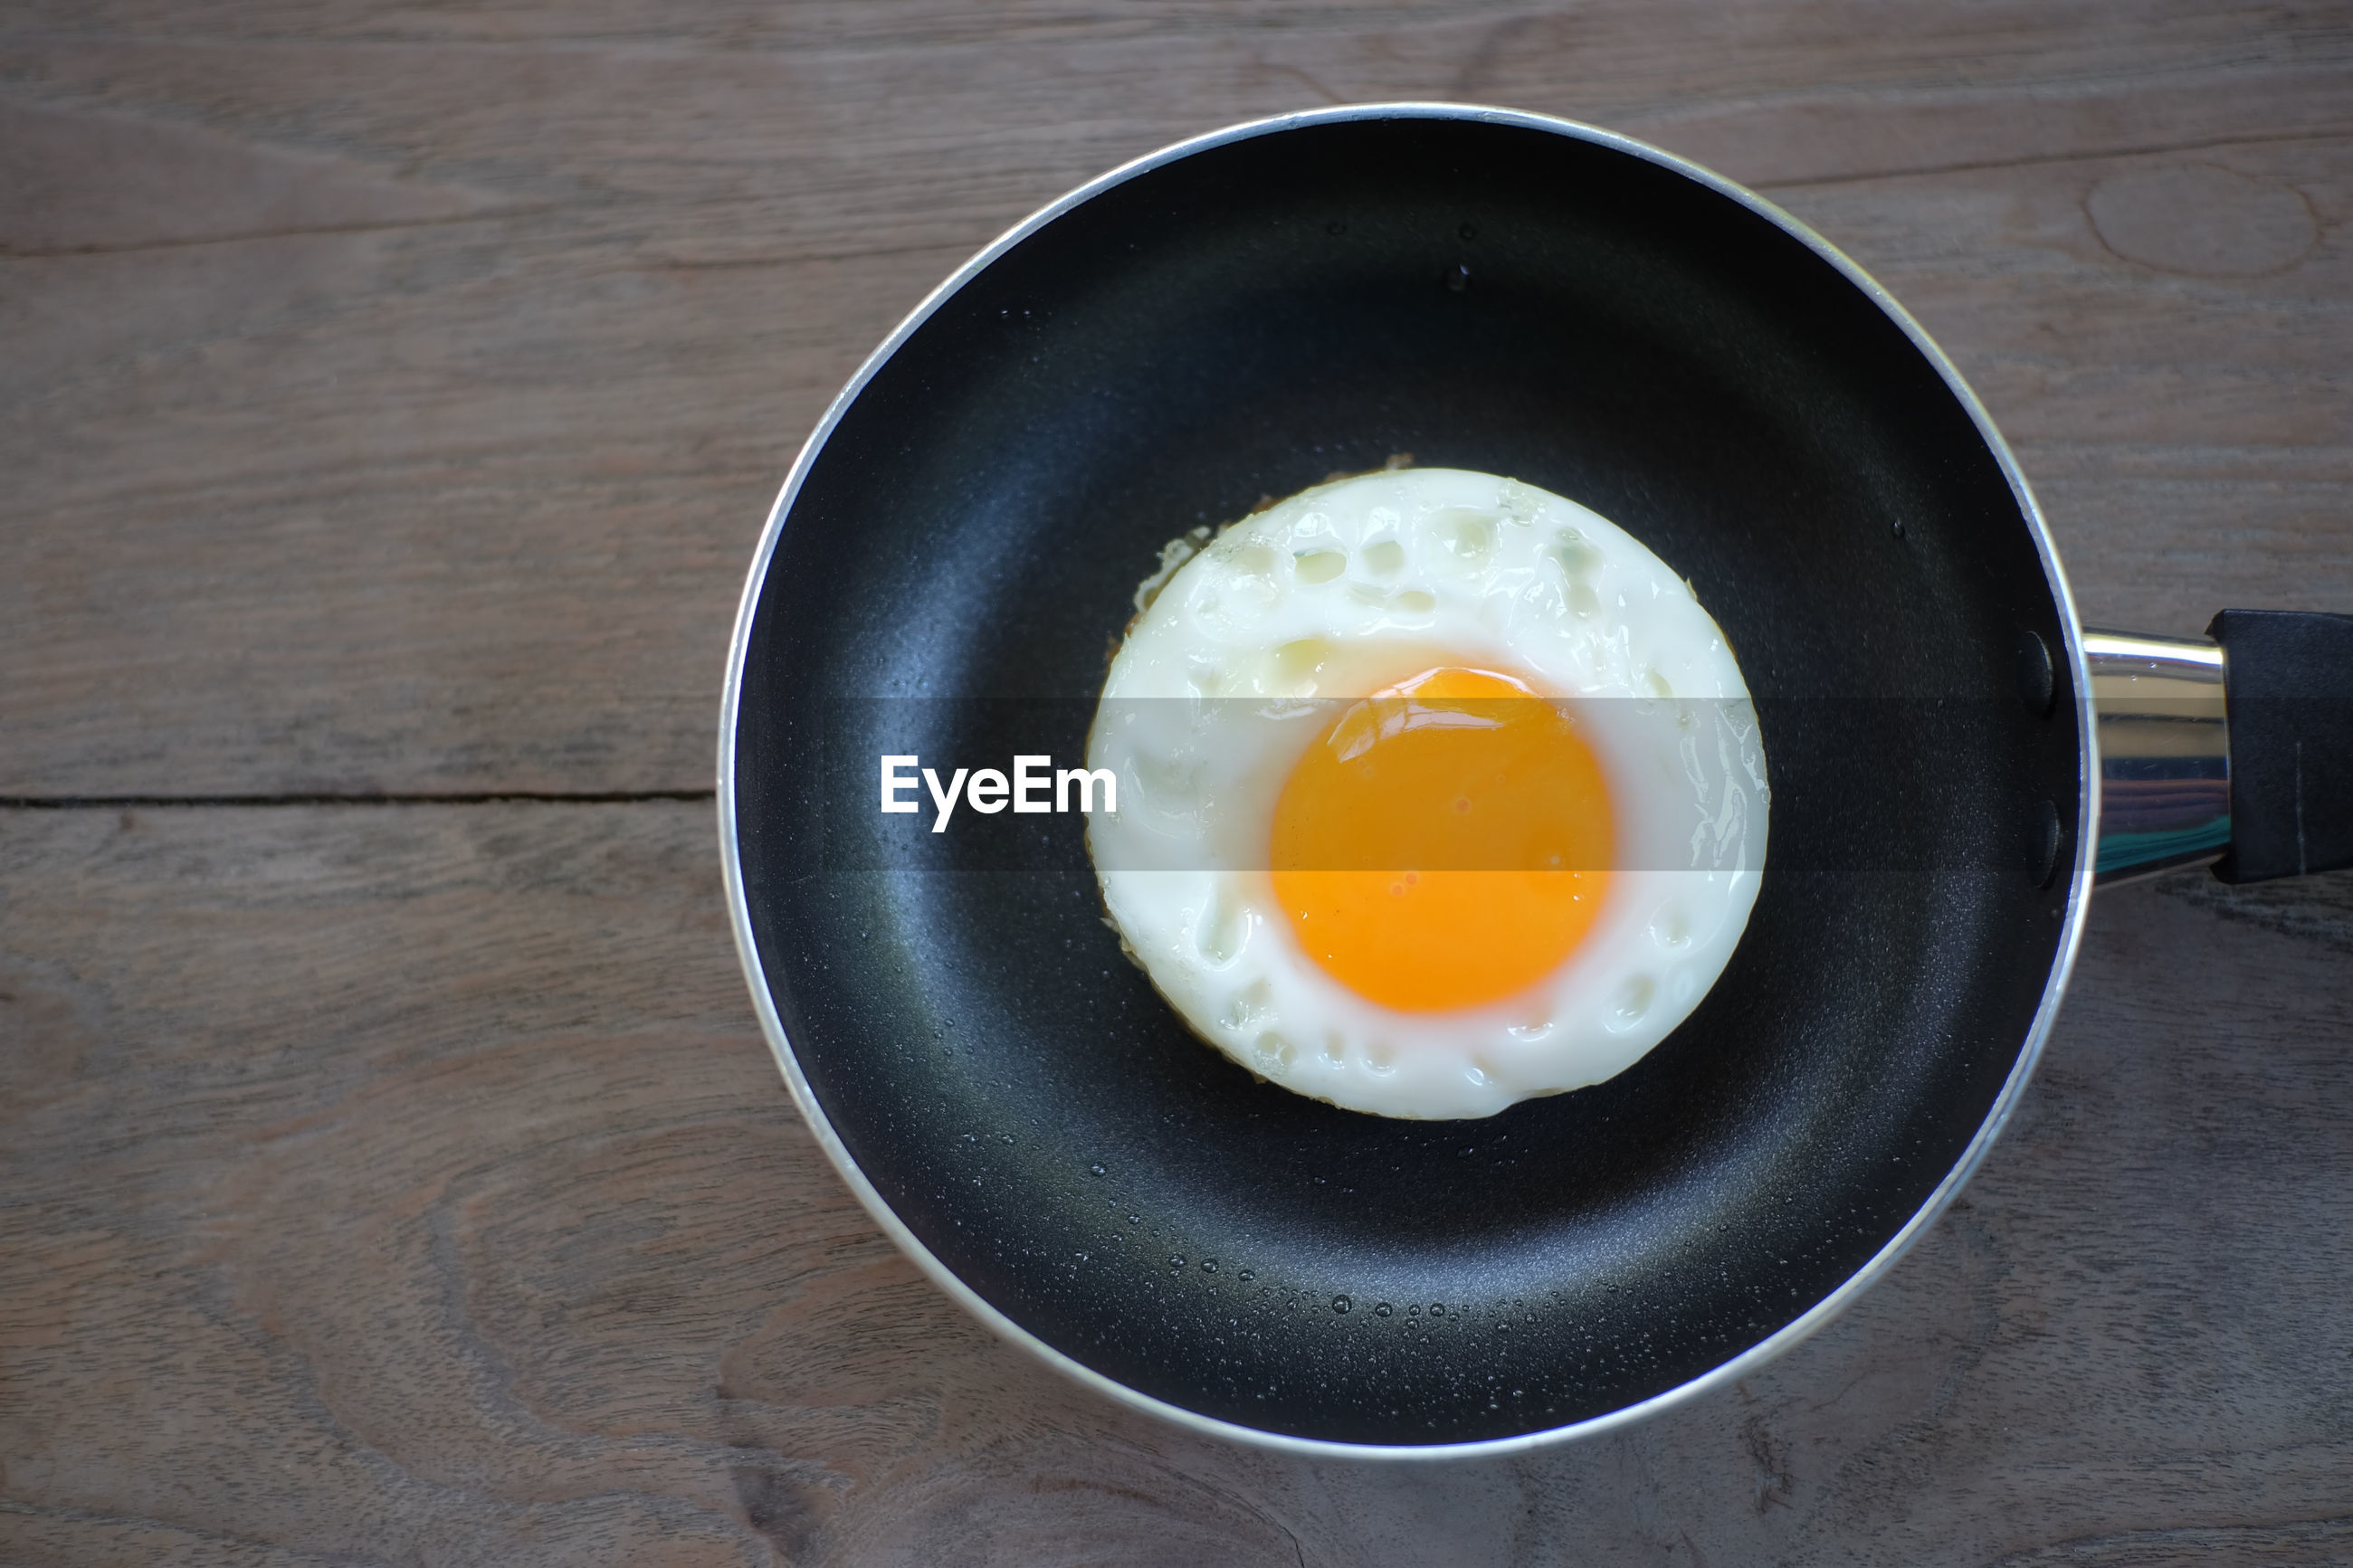 Directly above shot of fried egg in pan on table